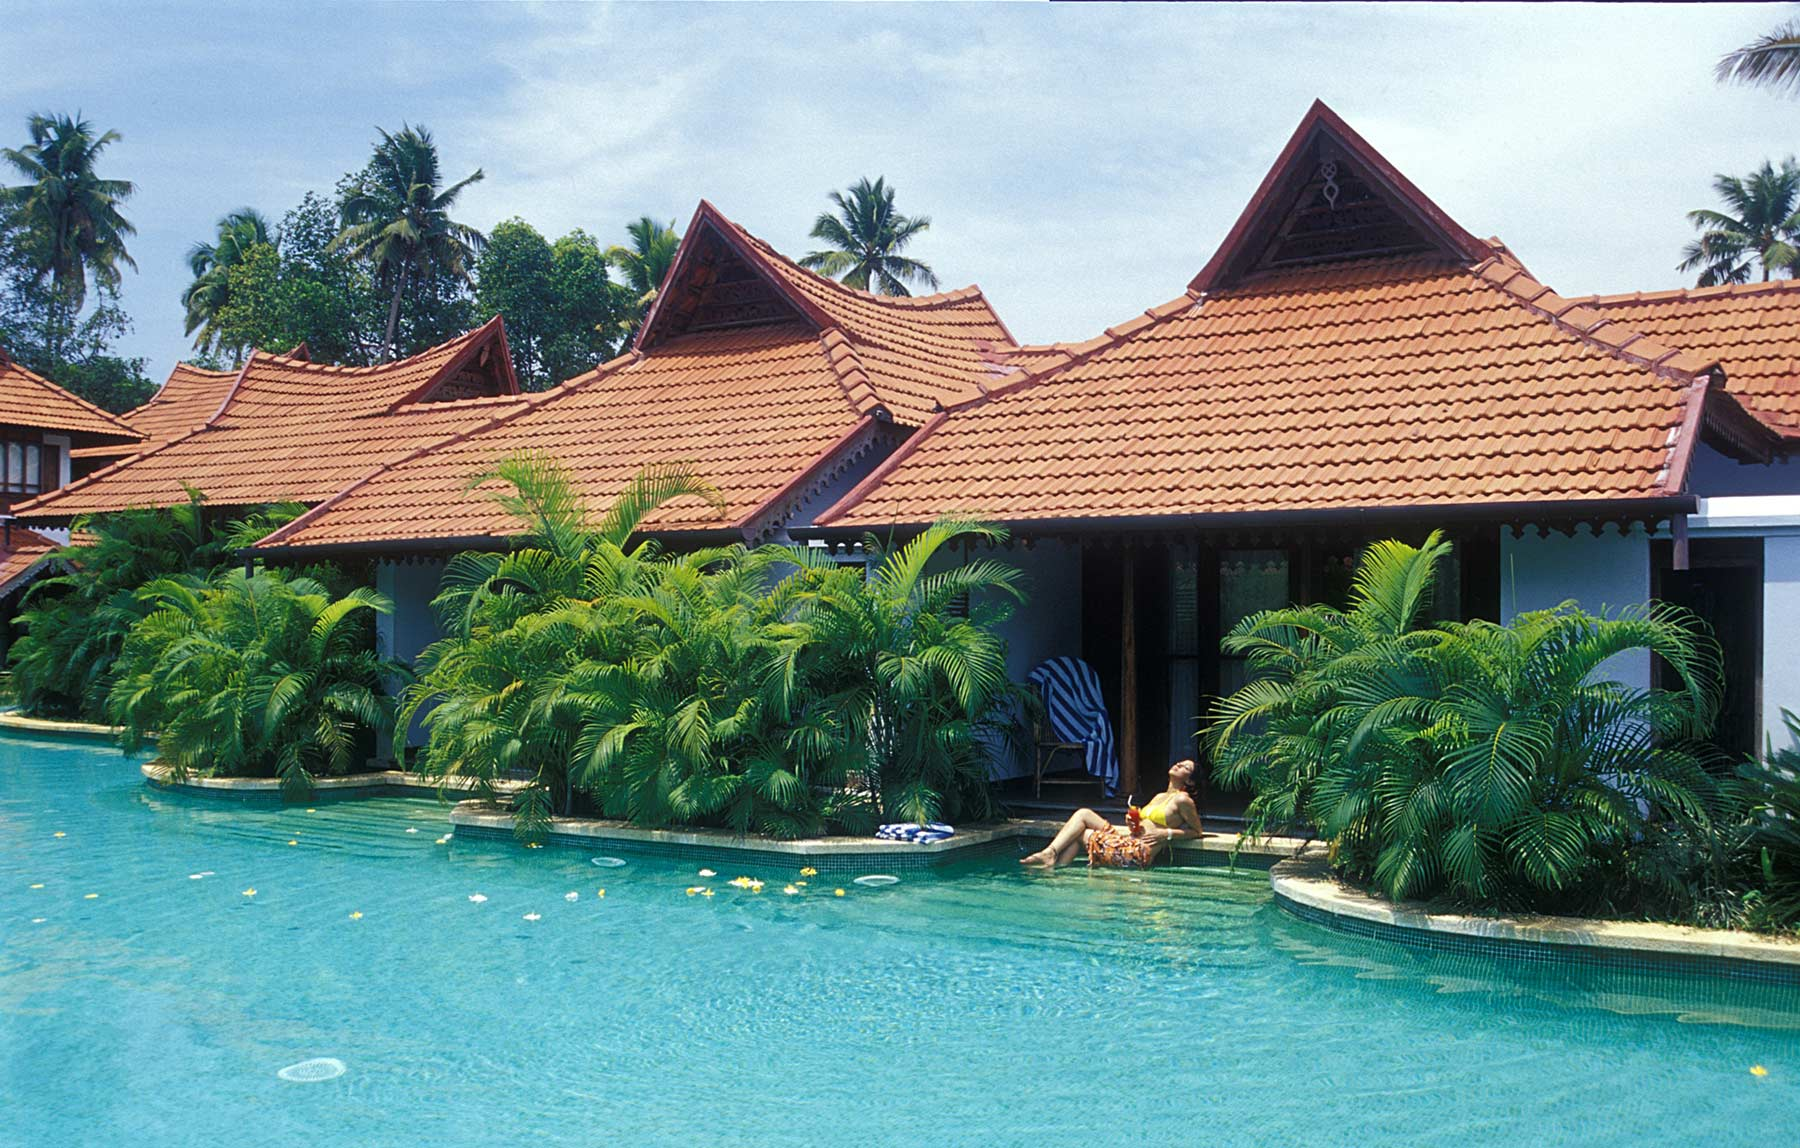 7 days ayurvedic de-stress package at kumarakom ayurvedic resort kerala, india101522658226.jpg